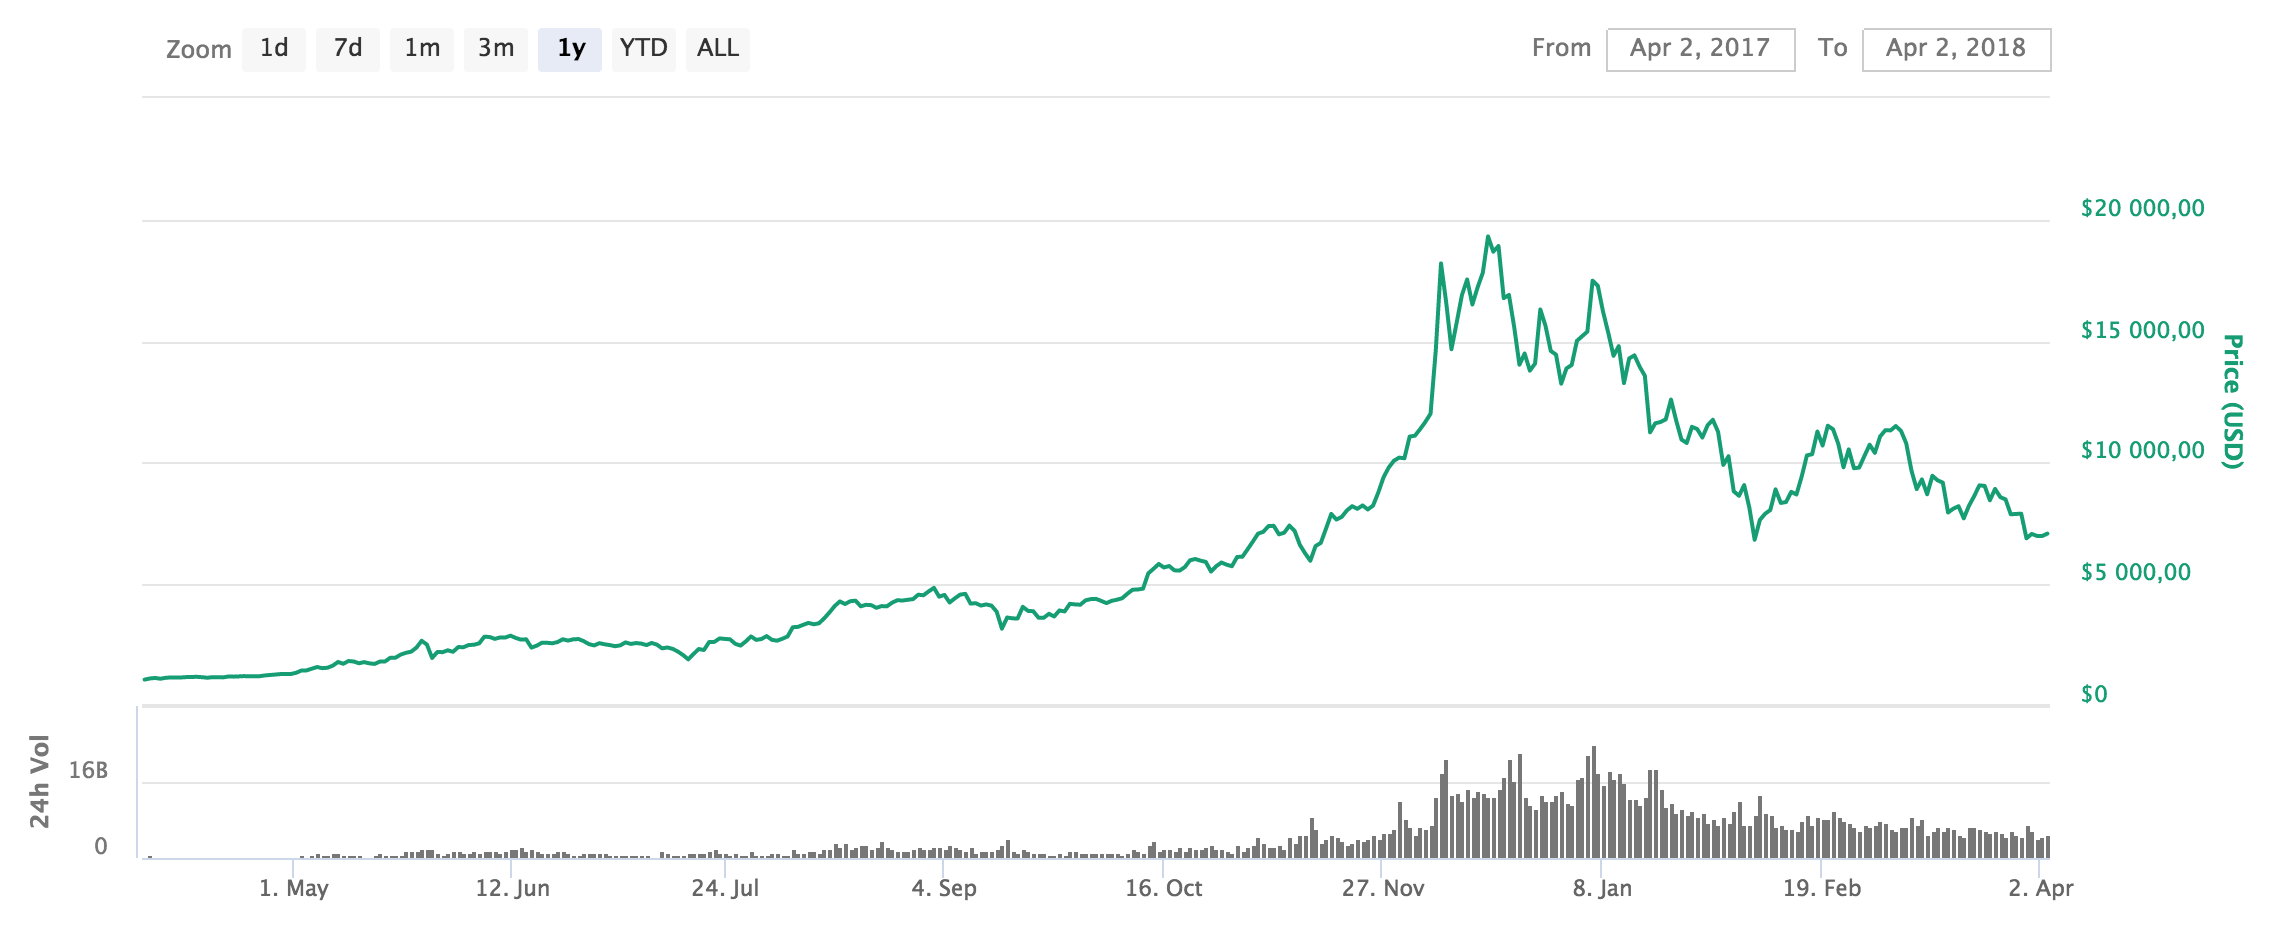 The price of Bitcoin during the past year.